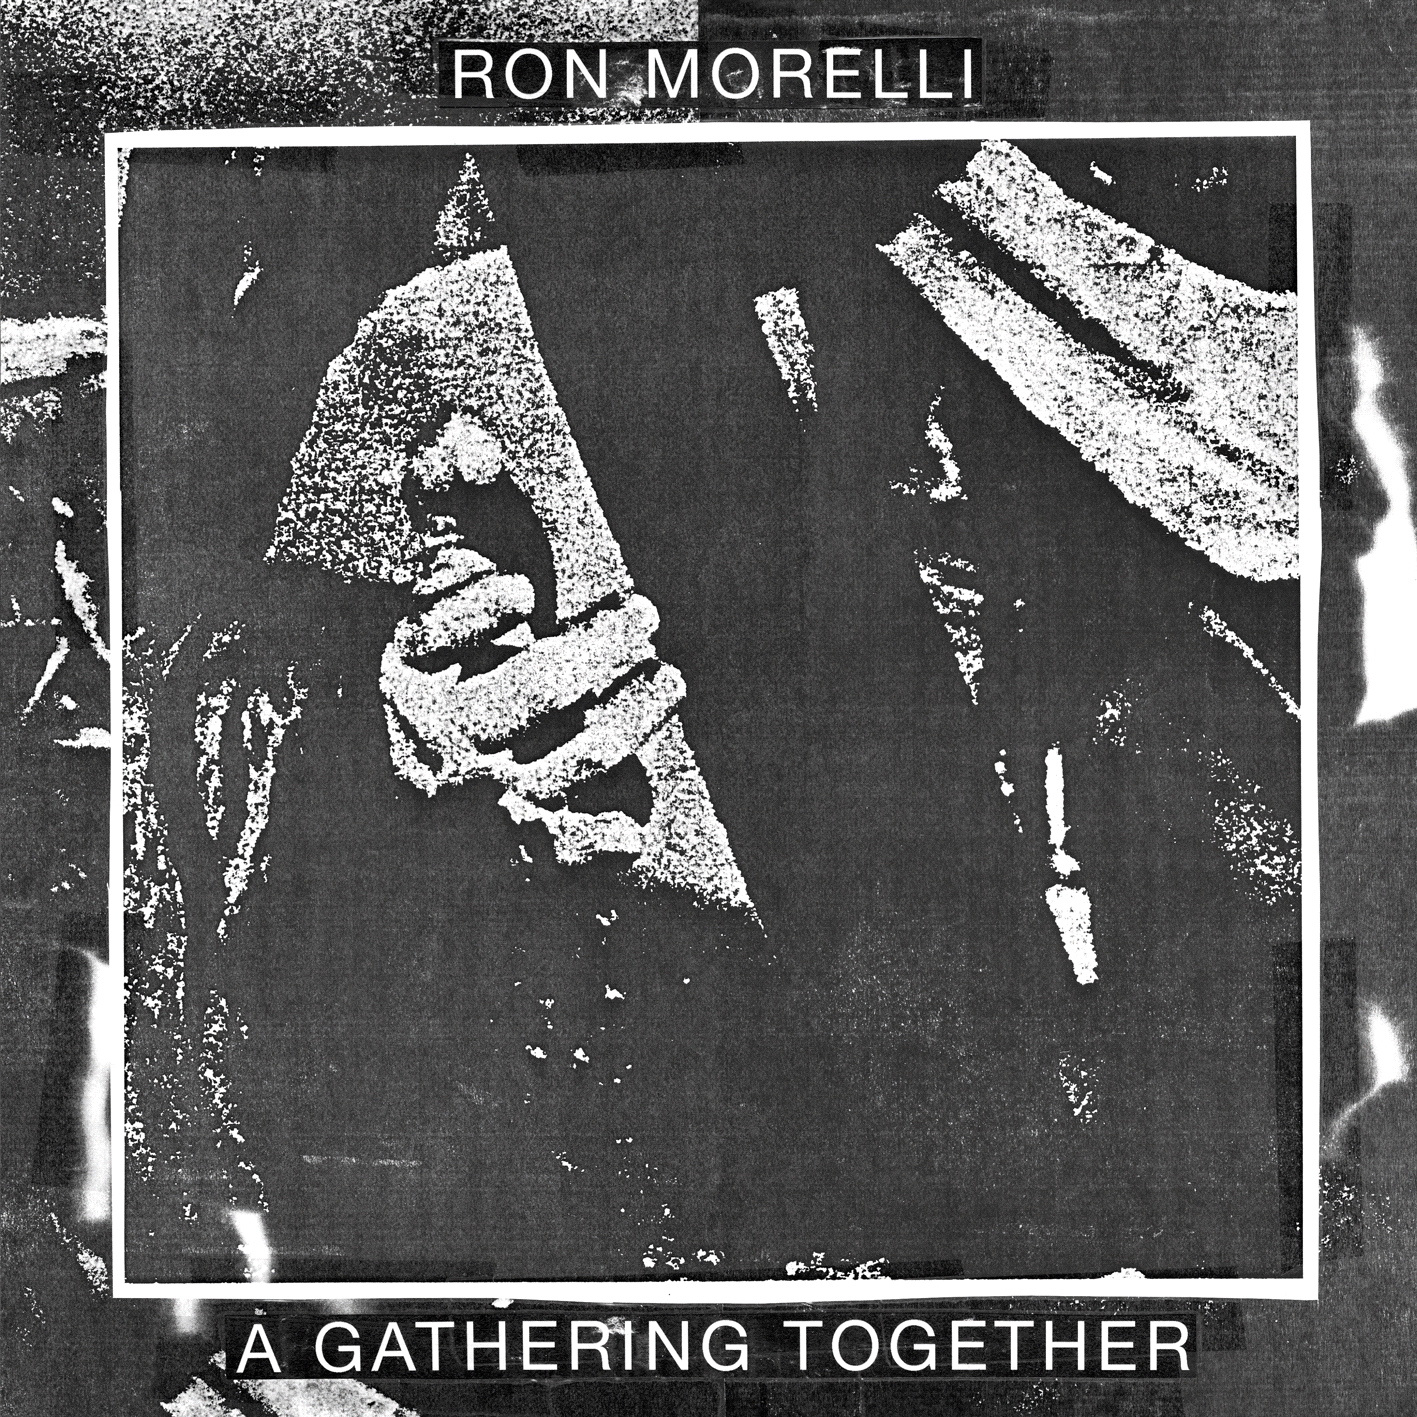 Morelli, Ron - A Gathering Together LP